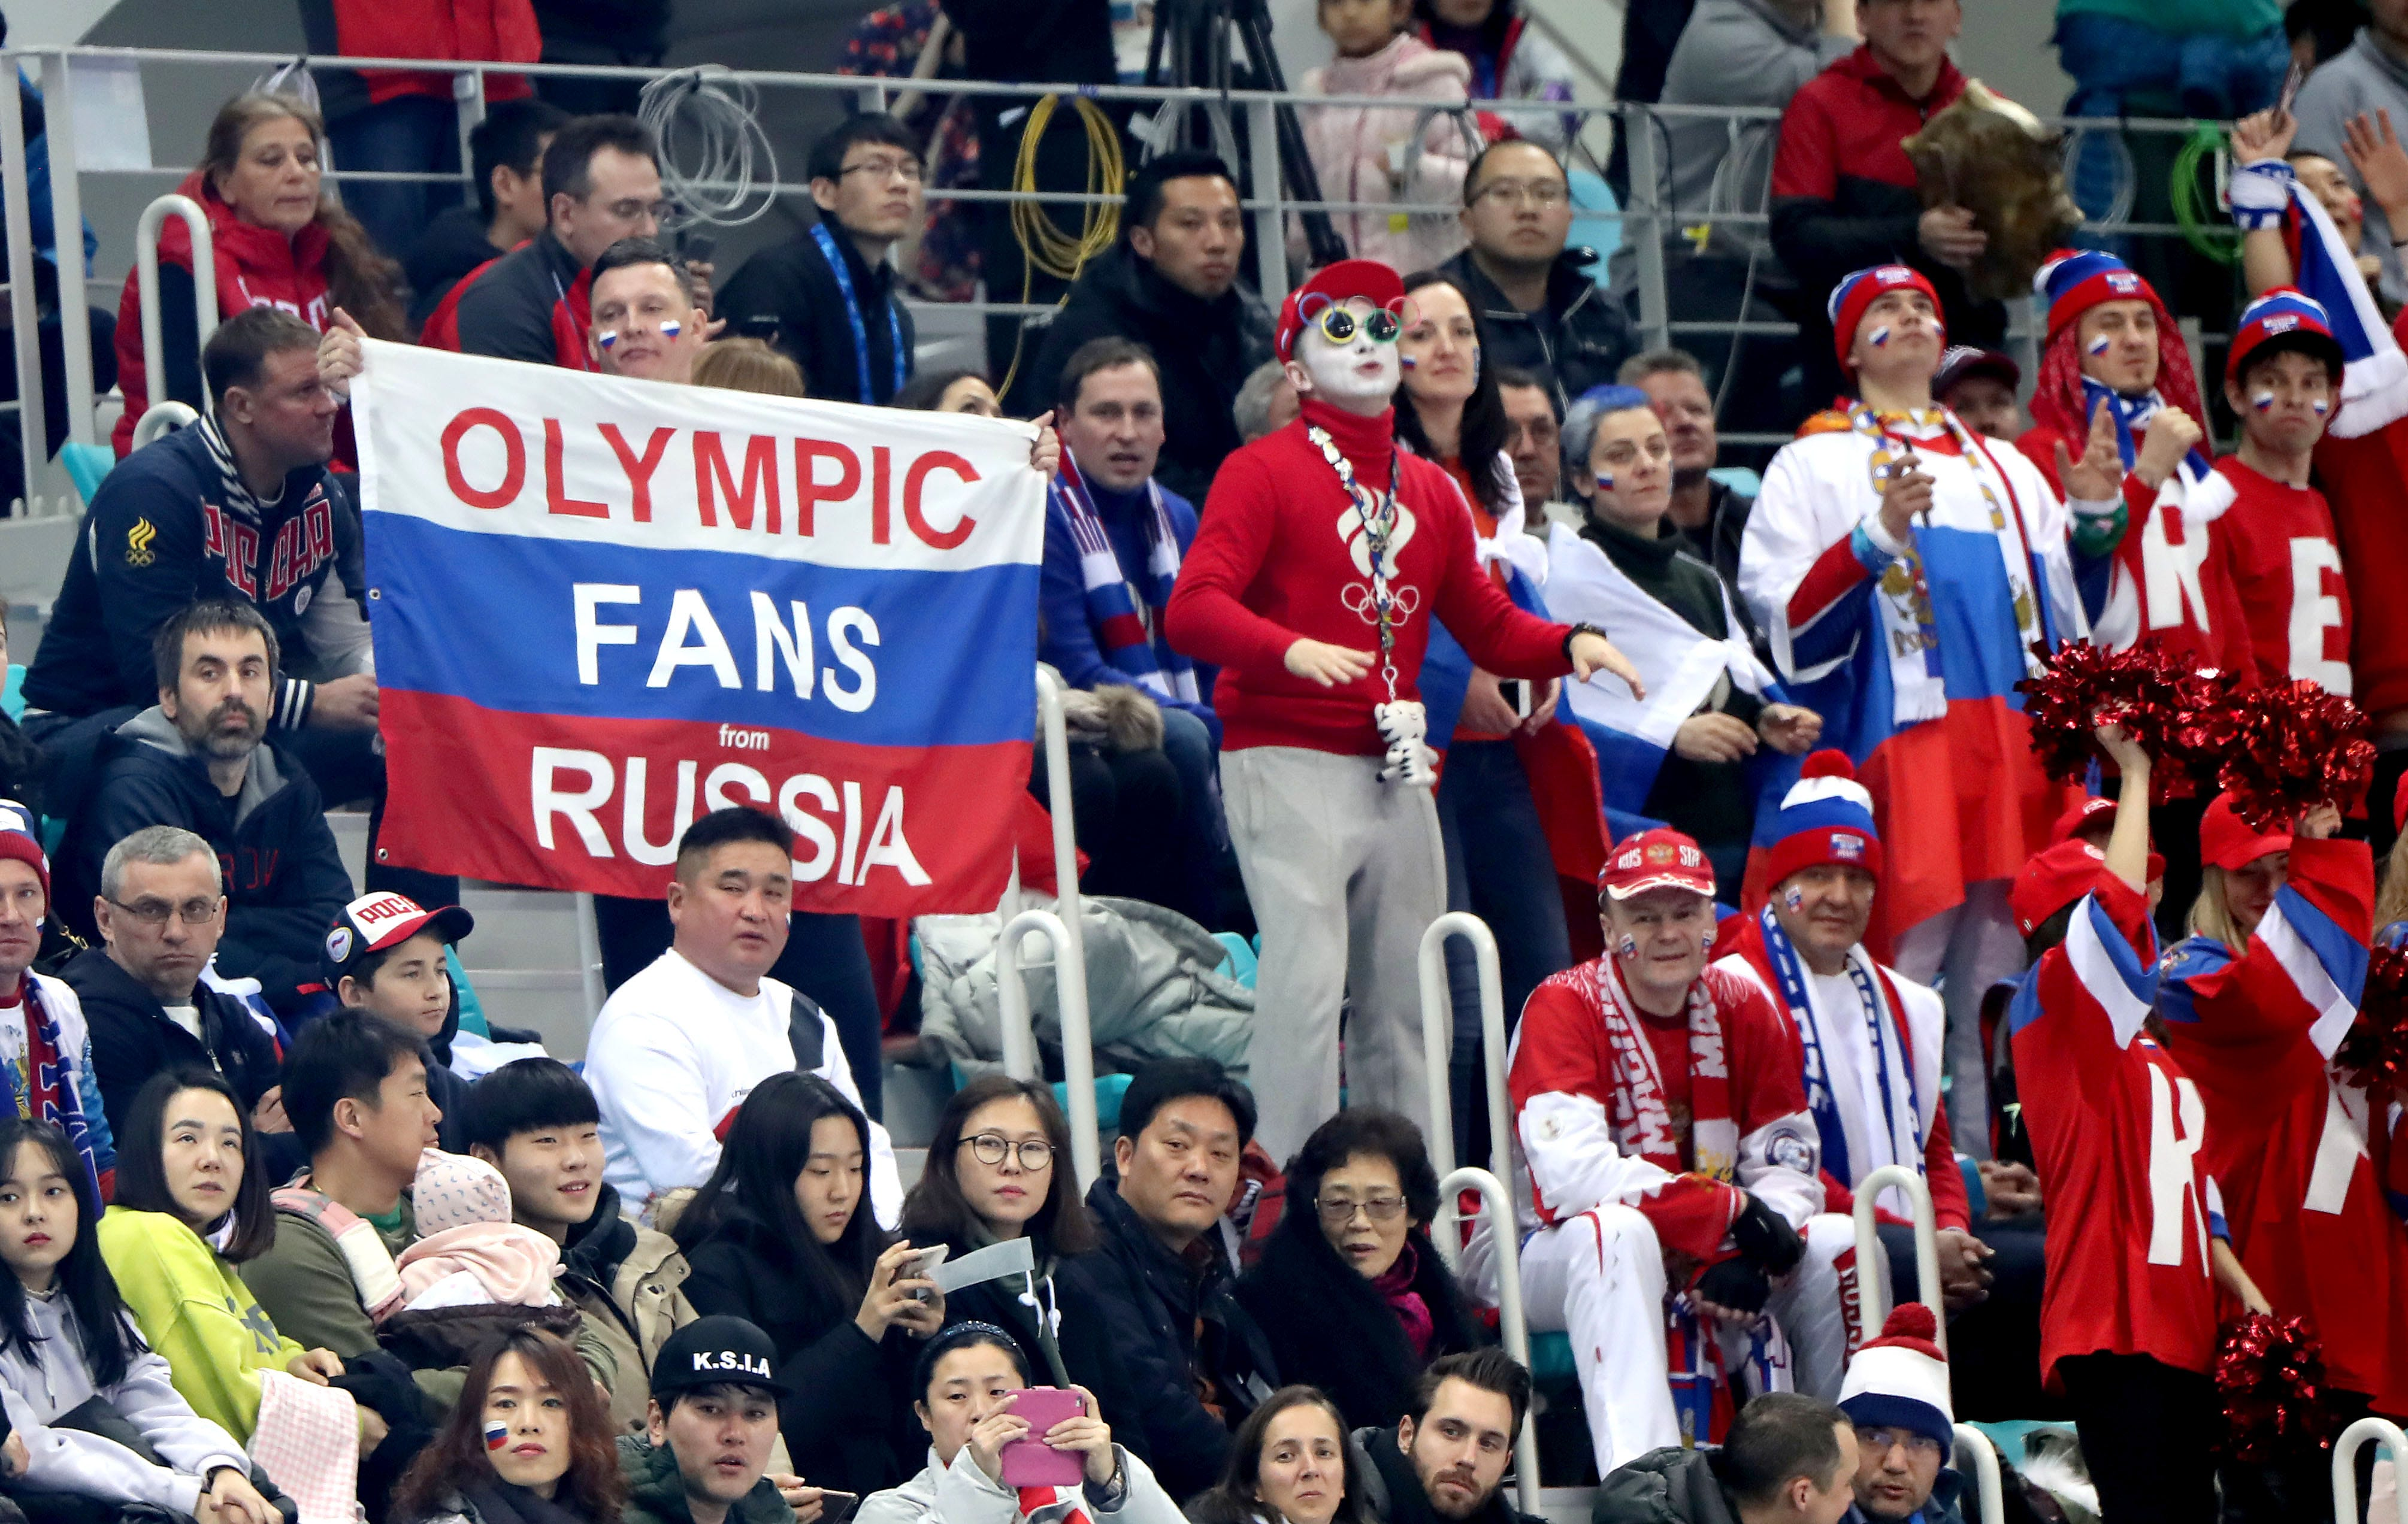 IOC did not remove the Russian team from the Olympics in Rio 15